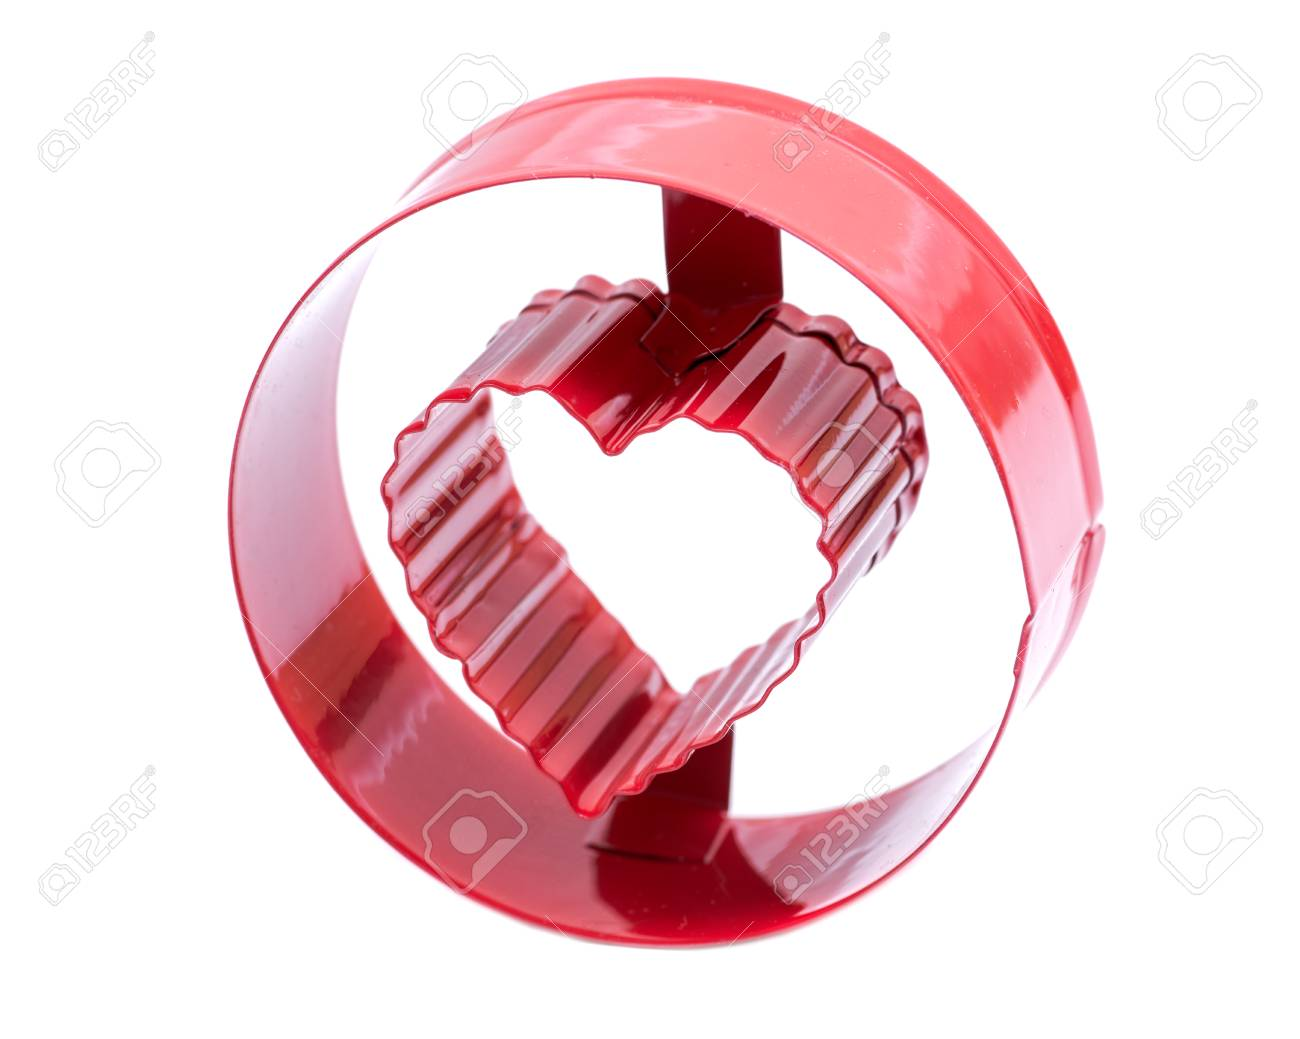 Letter O with heart cookie cake molds cutting making DIY shape